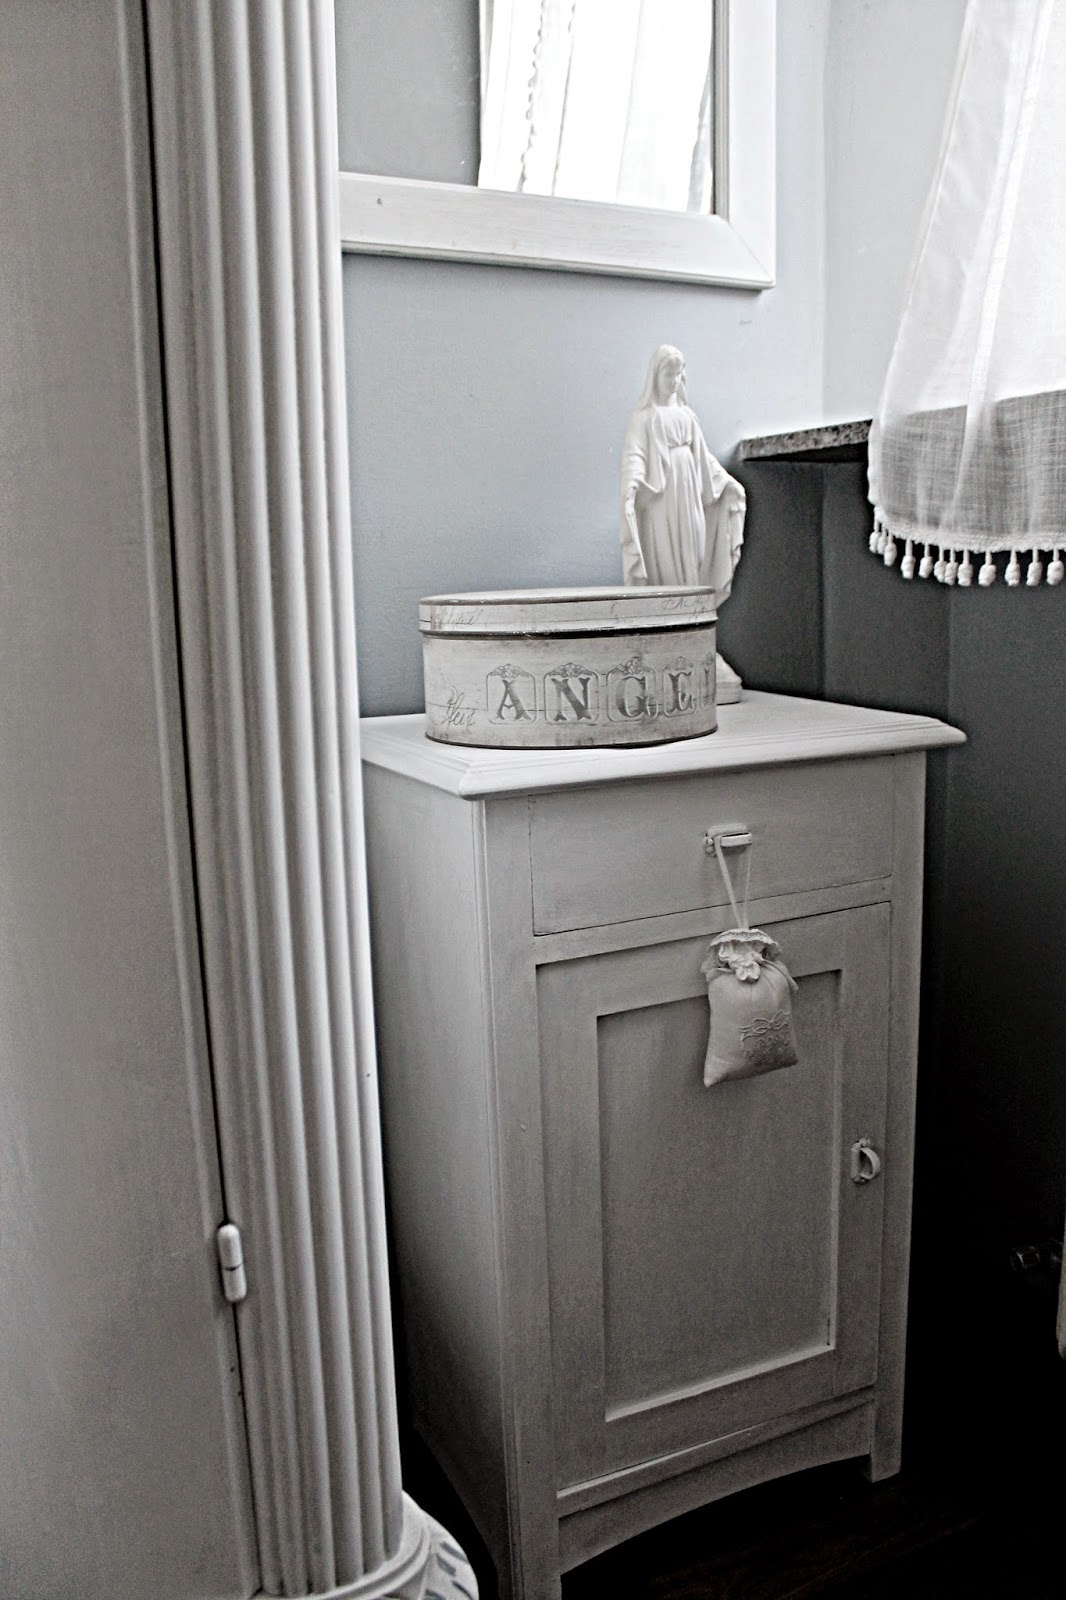 My little cozy home (Cilli Studio): L'armoire French Style dipinto ...